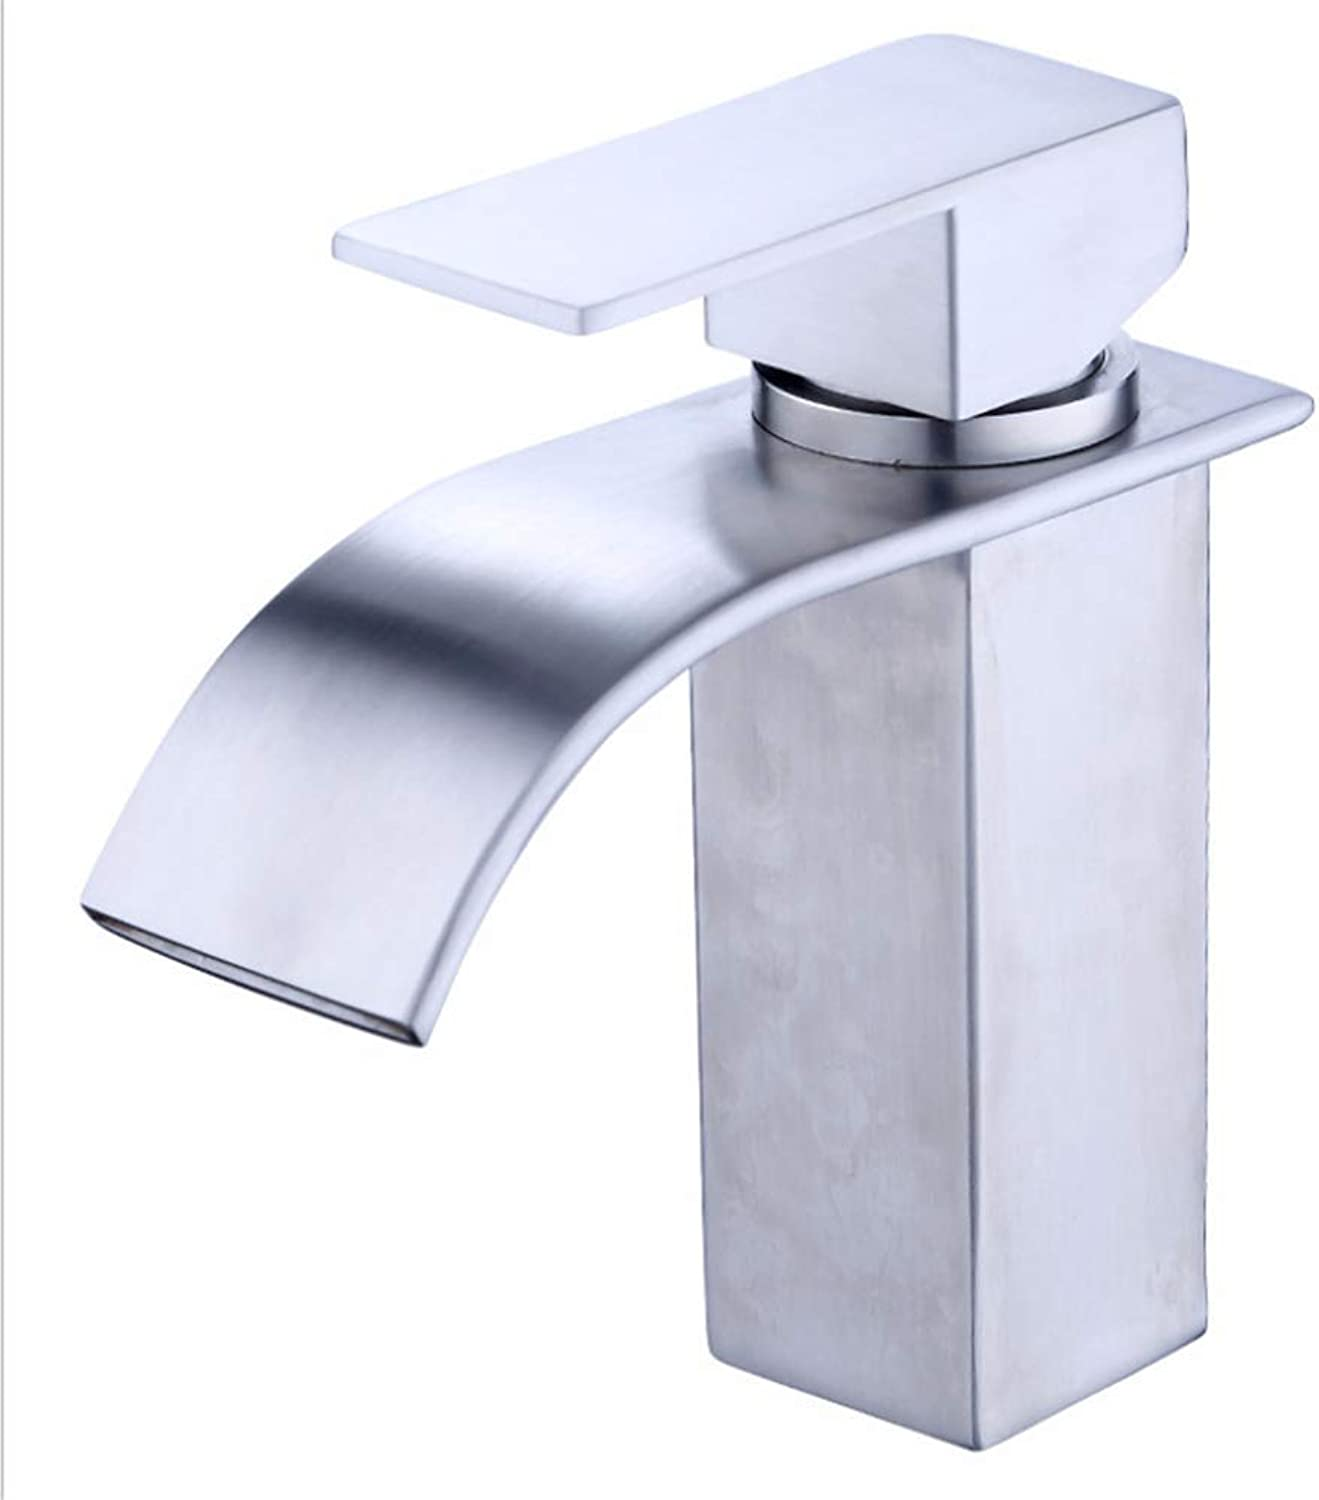 Basin Mixer Tap Bath Fixtures Wash Basinsinkkitchen Ordinary Faucet 304 Stainless Steel Basin Faucet Hot and Cold Water Mixing Valve Drawing Single Hole